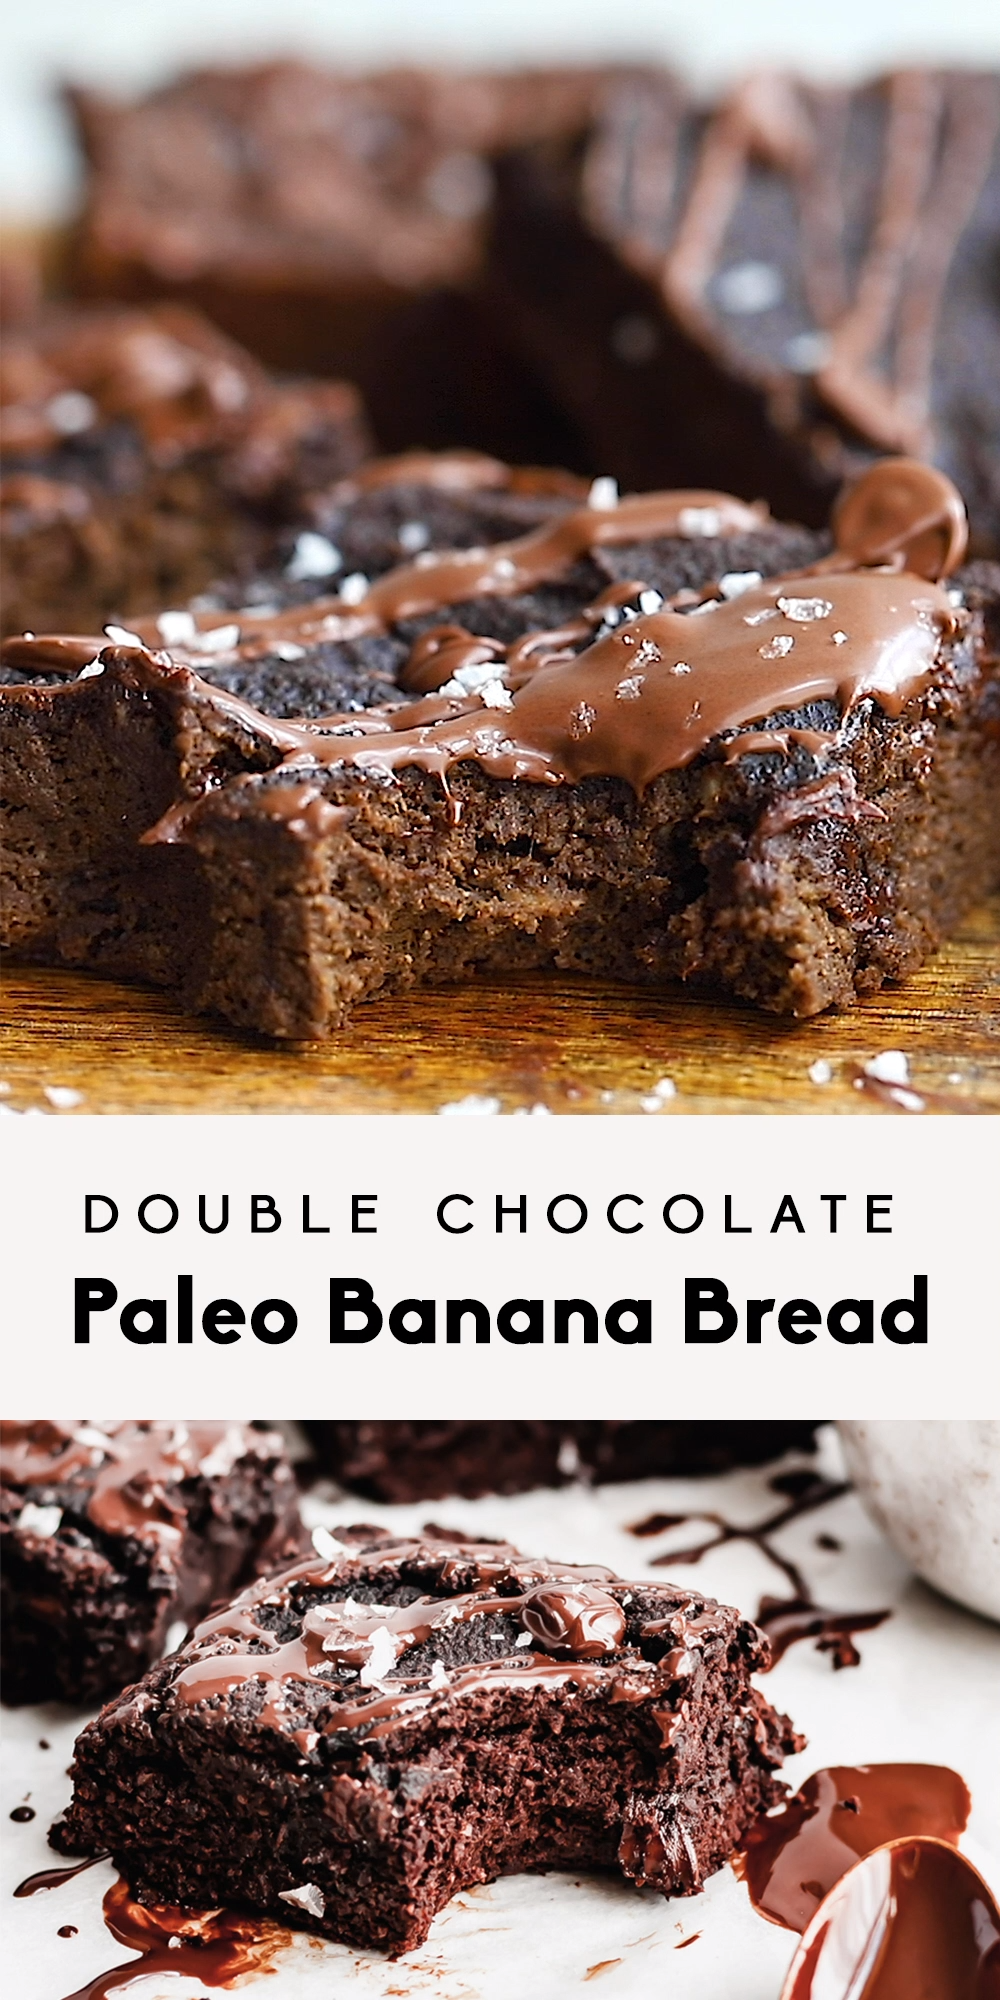 Double Chocolate Paleo Banana Bread images